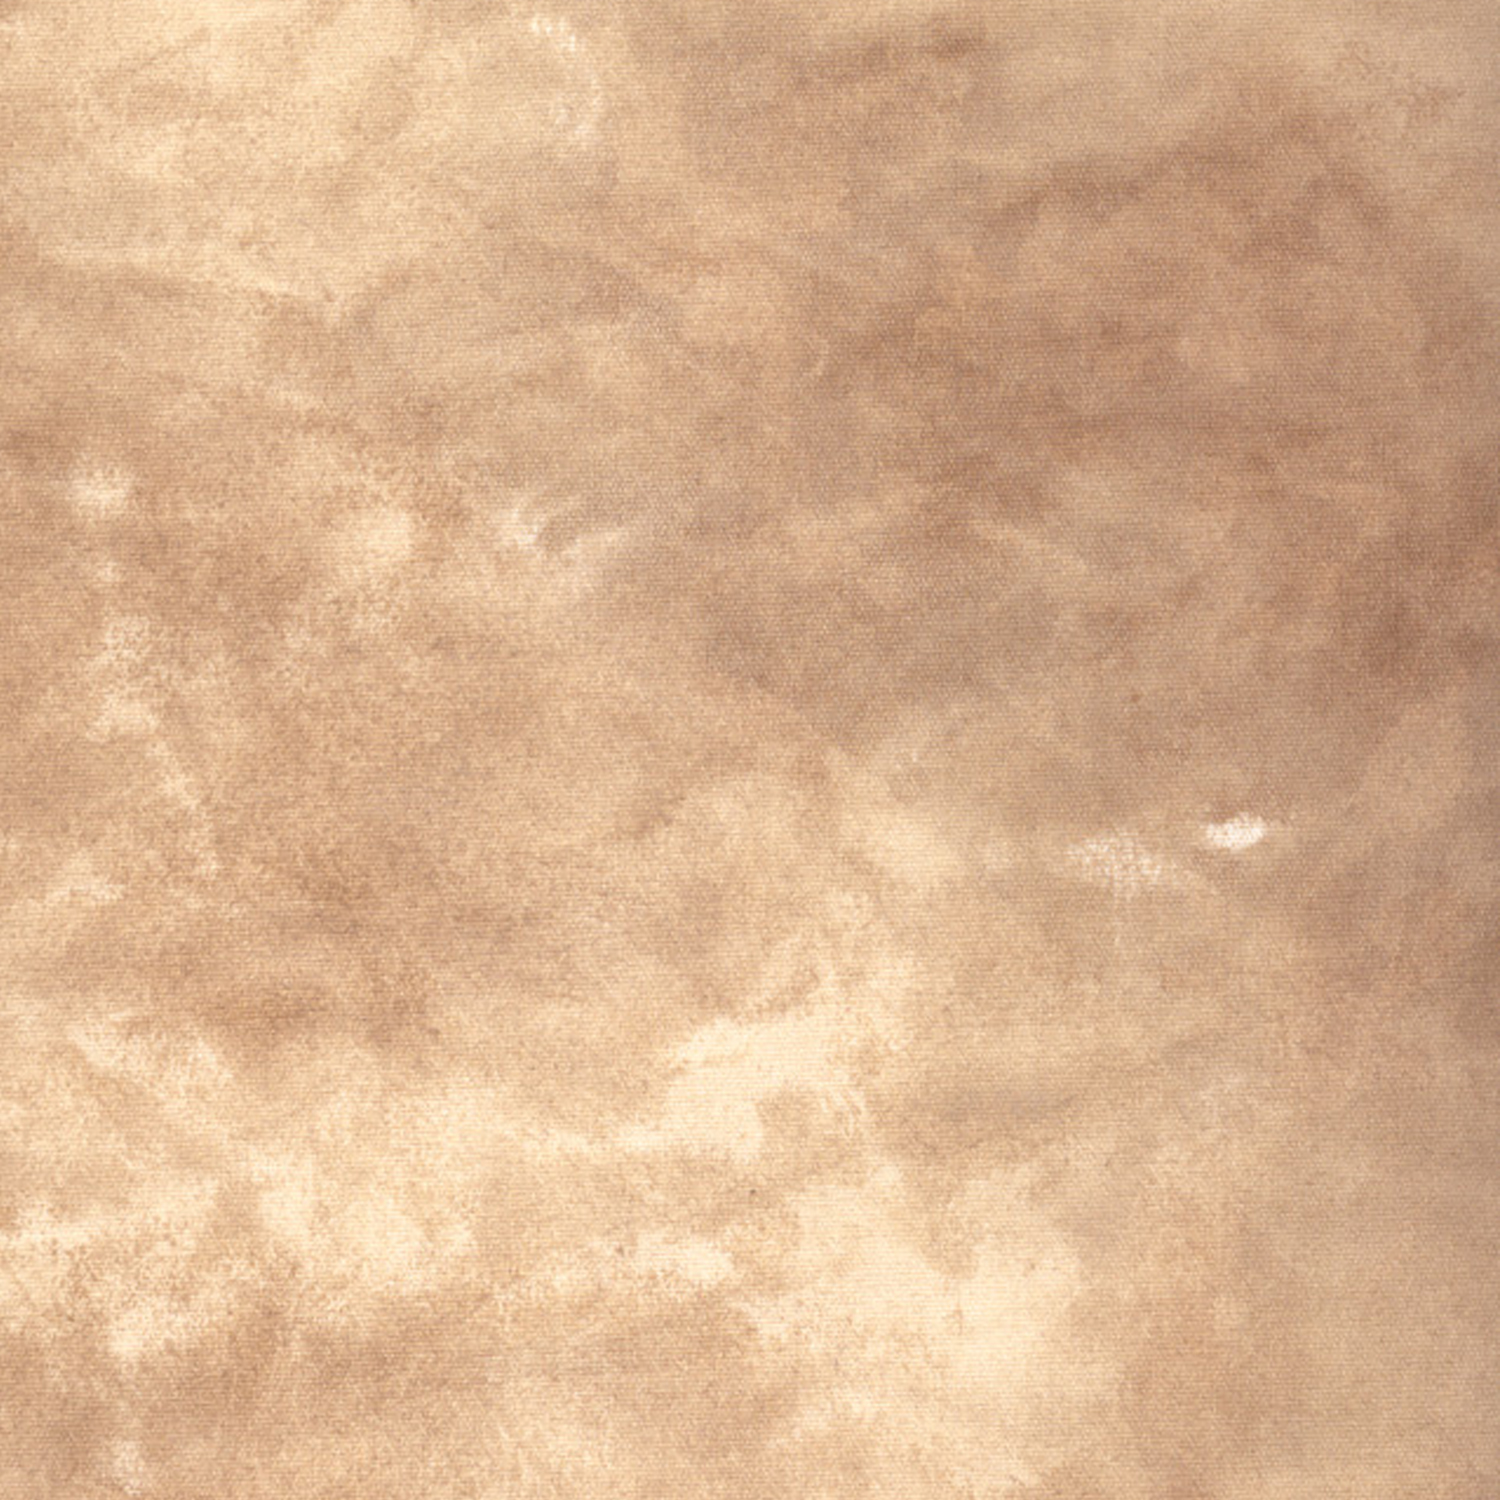 Free Photo Tan Mottled Background Ornate Repetition